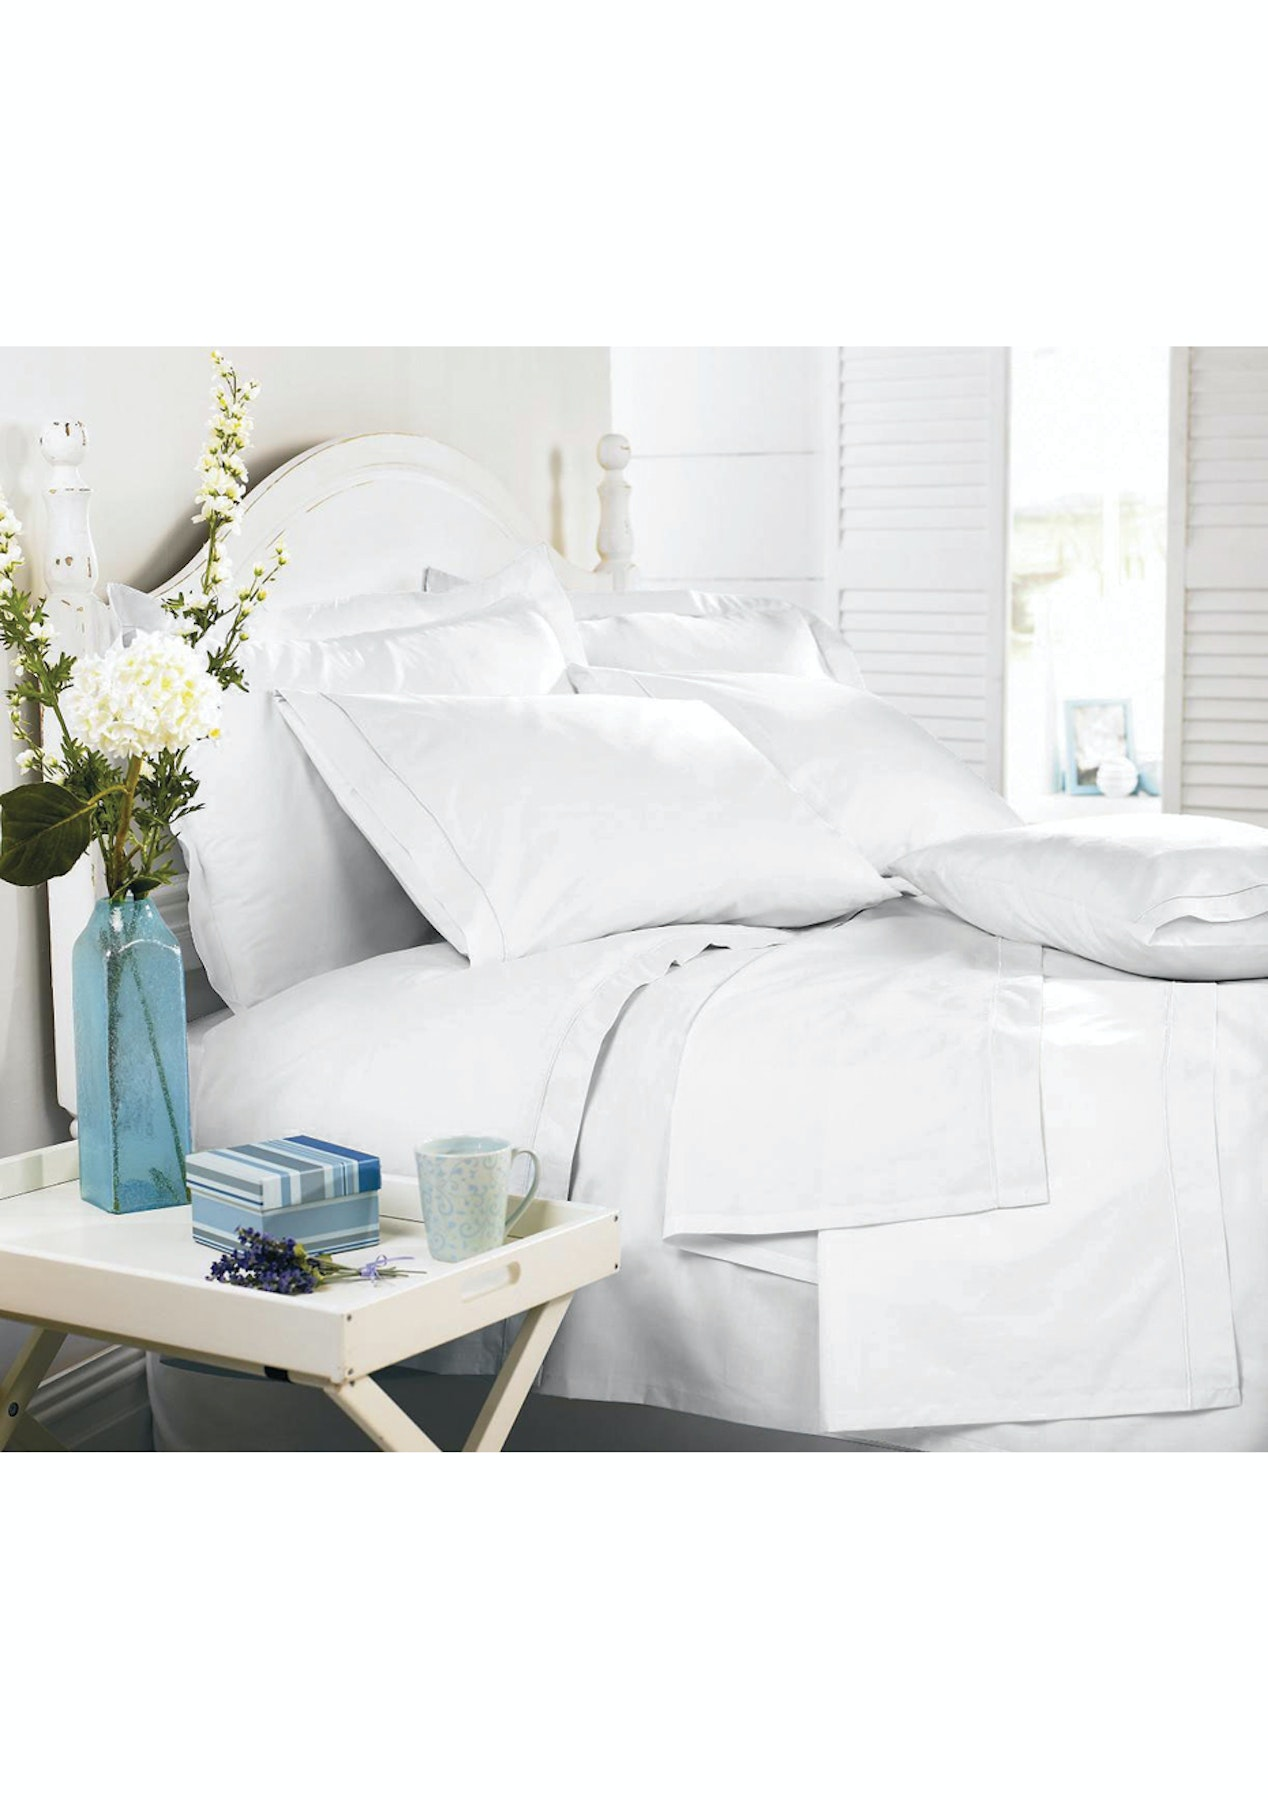 About white 1000tc egyptian cotton complete bedding collection sheet - Royal Comfort Middleton Collection 1000tc 100 Egyptian Cotton Sheet Set White Queen Bedding Best Sellers Onceit